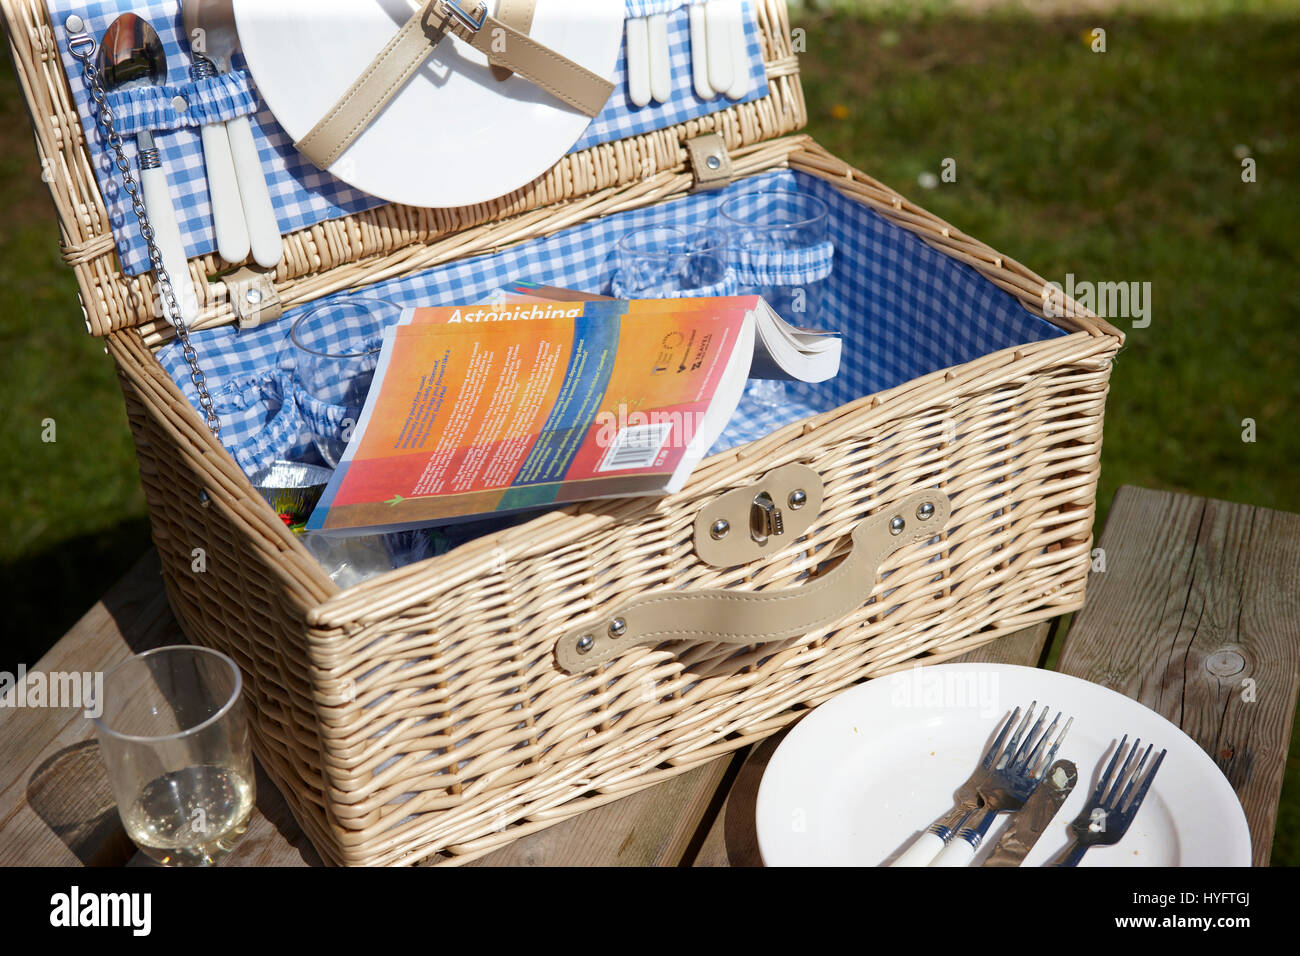 Orange book in a blue check wicker picnic basket, The Literary Festival, Laugharn, UK - Stock Image